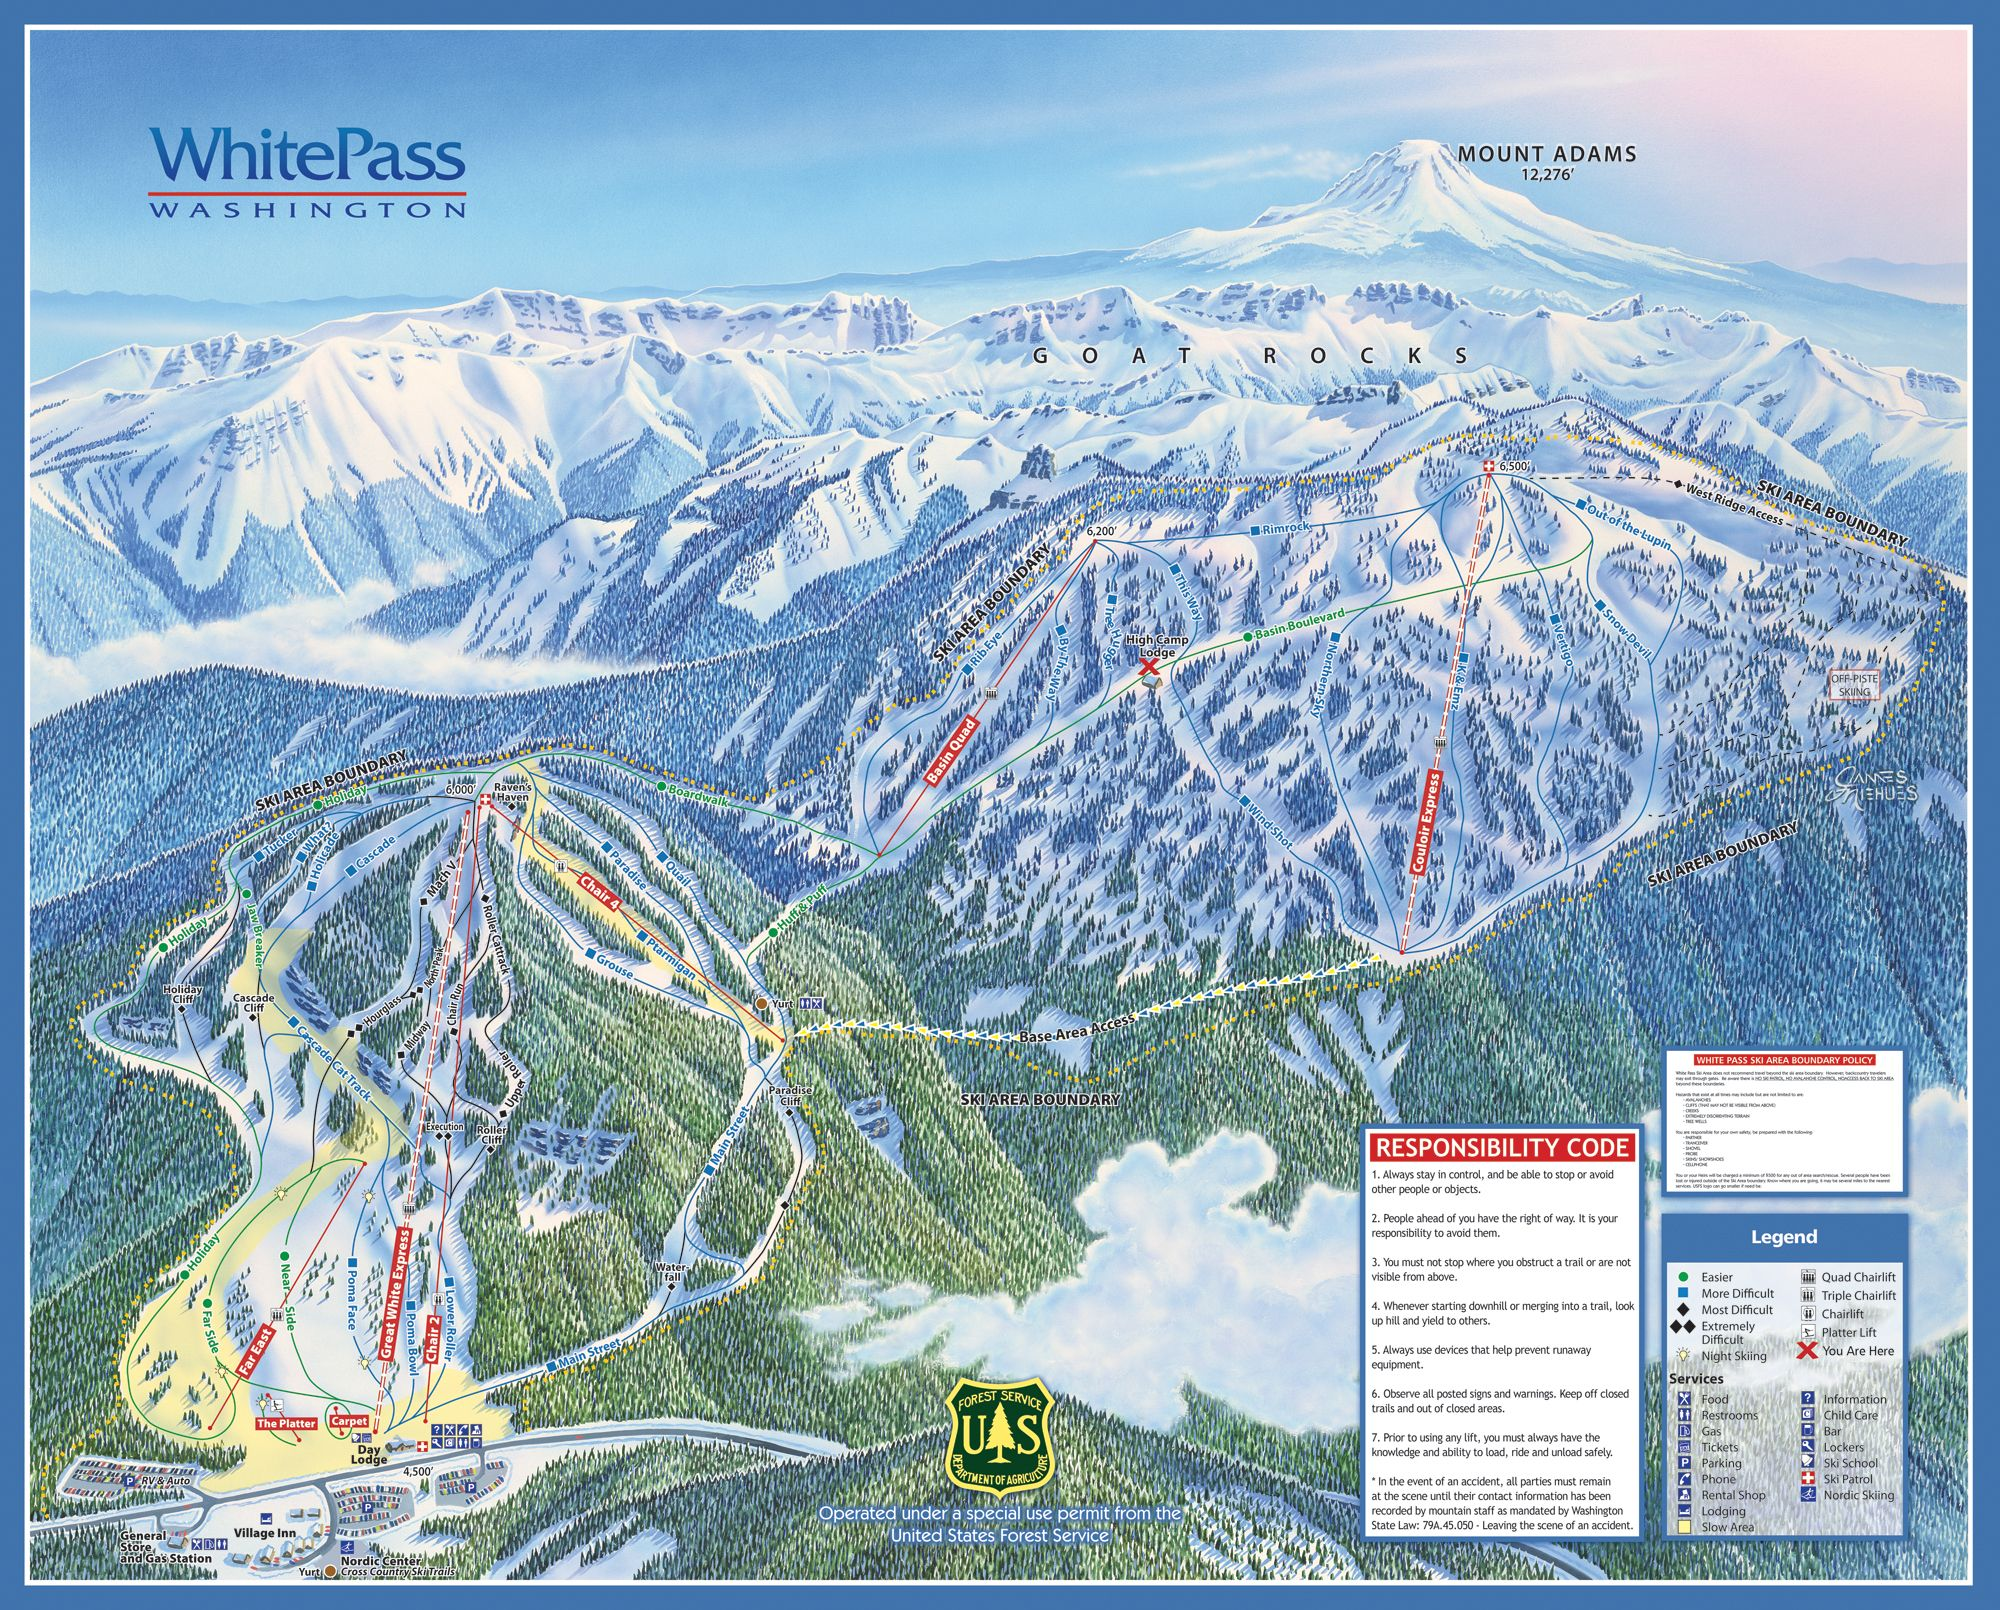 ski areas in washington state map White Pass Wa Last Time I Was There Only The Mountain On The